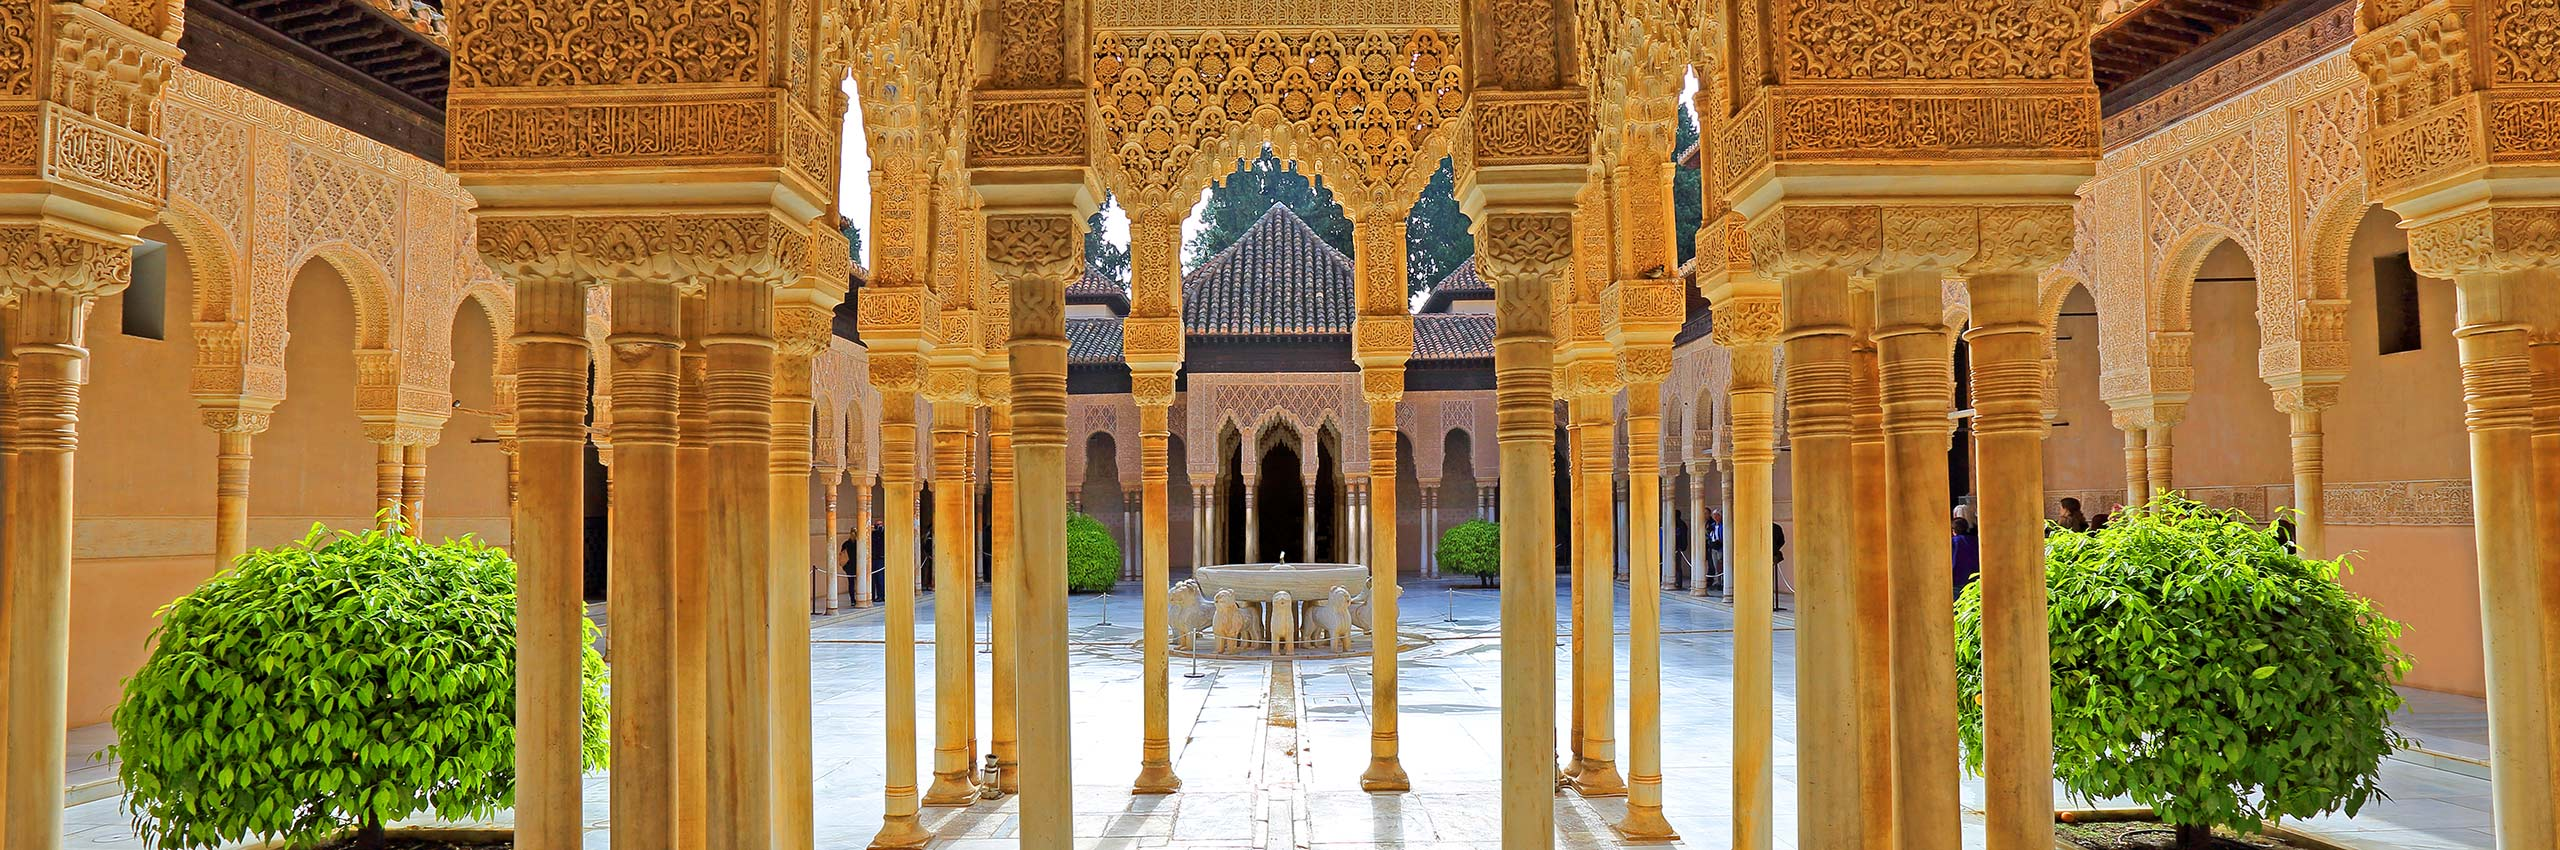 BVH-20431277 | ESP/Andalusia, Granada, Alhambra, Court of the Lions | © Günter Gräfenhain/4Corners